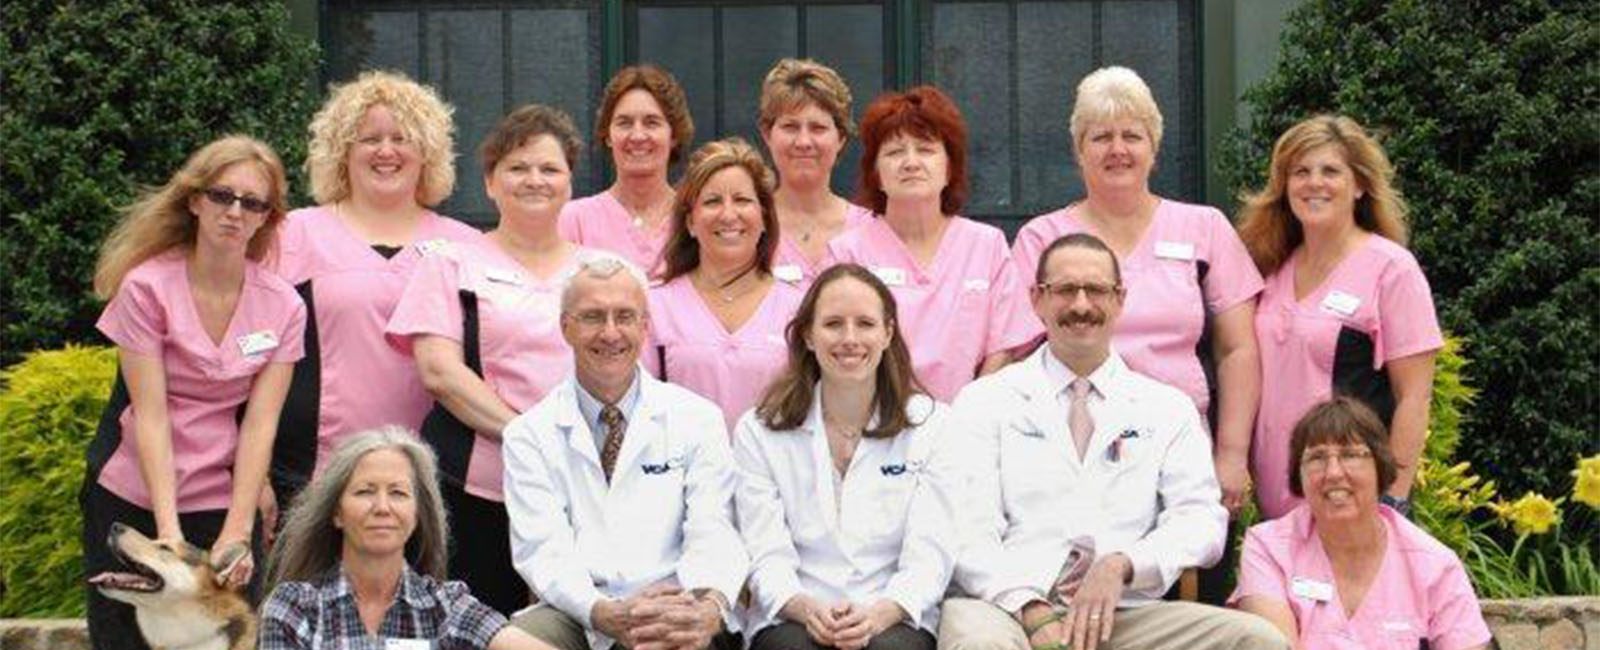 Homepage Team PIcture of VCA Old Trail Animal Hospital